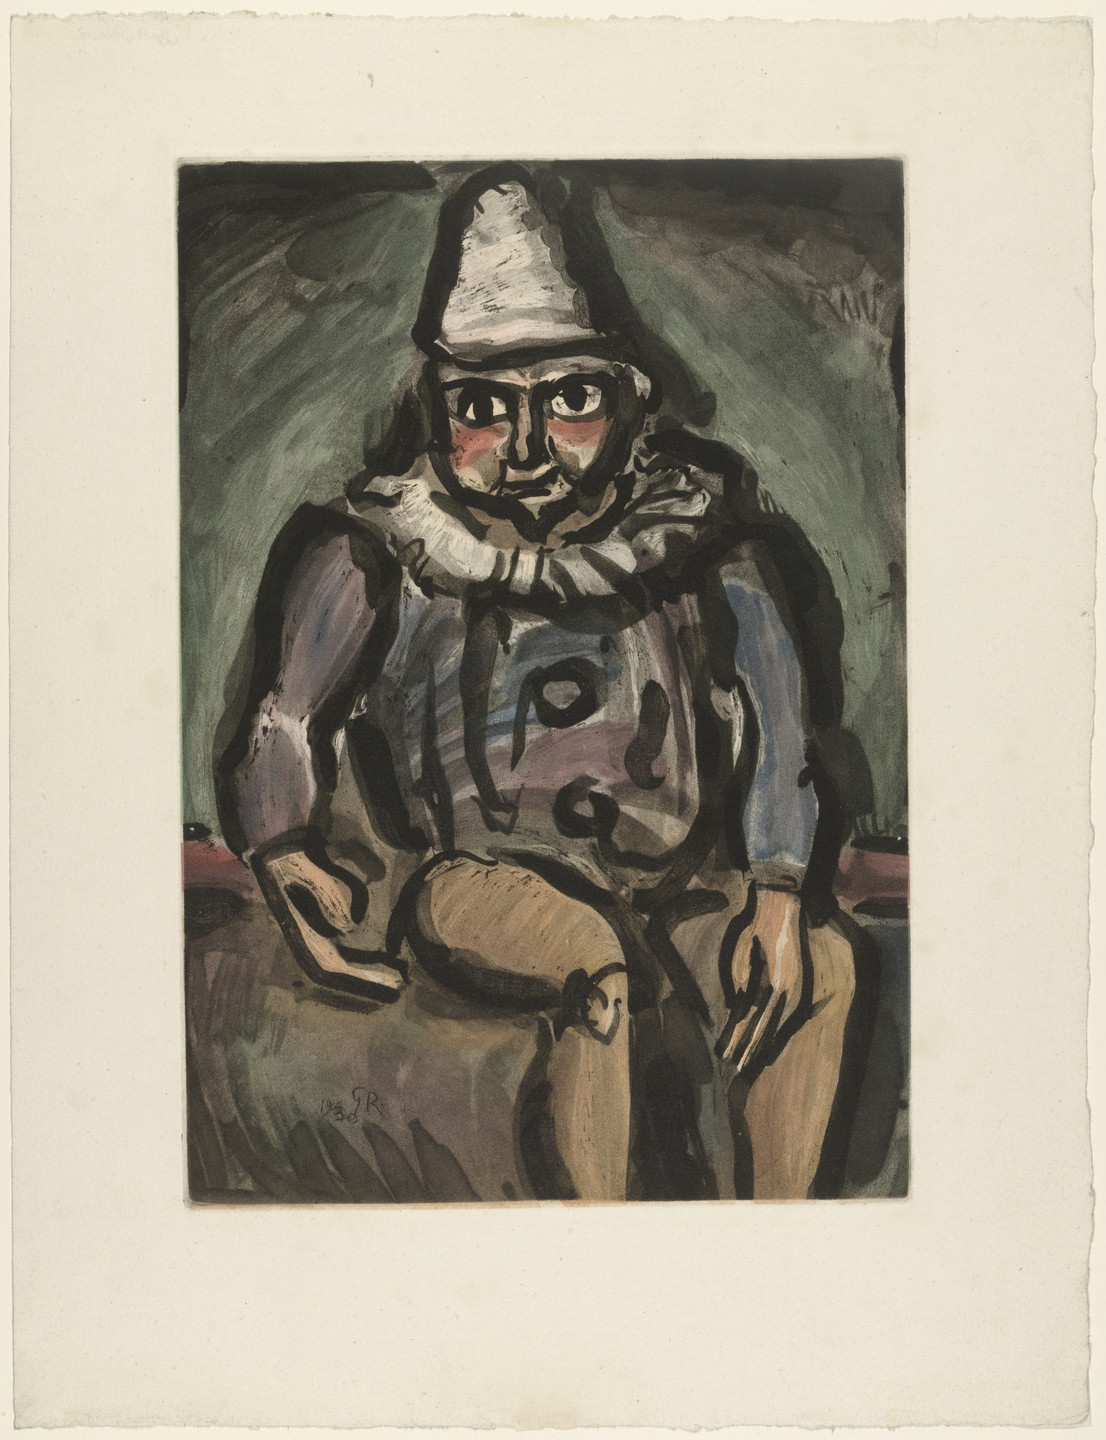 Georges Rouault. The Old Clown from Cirque. 1930